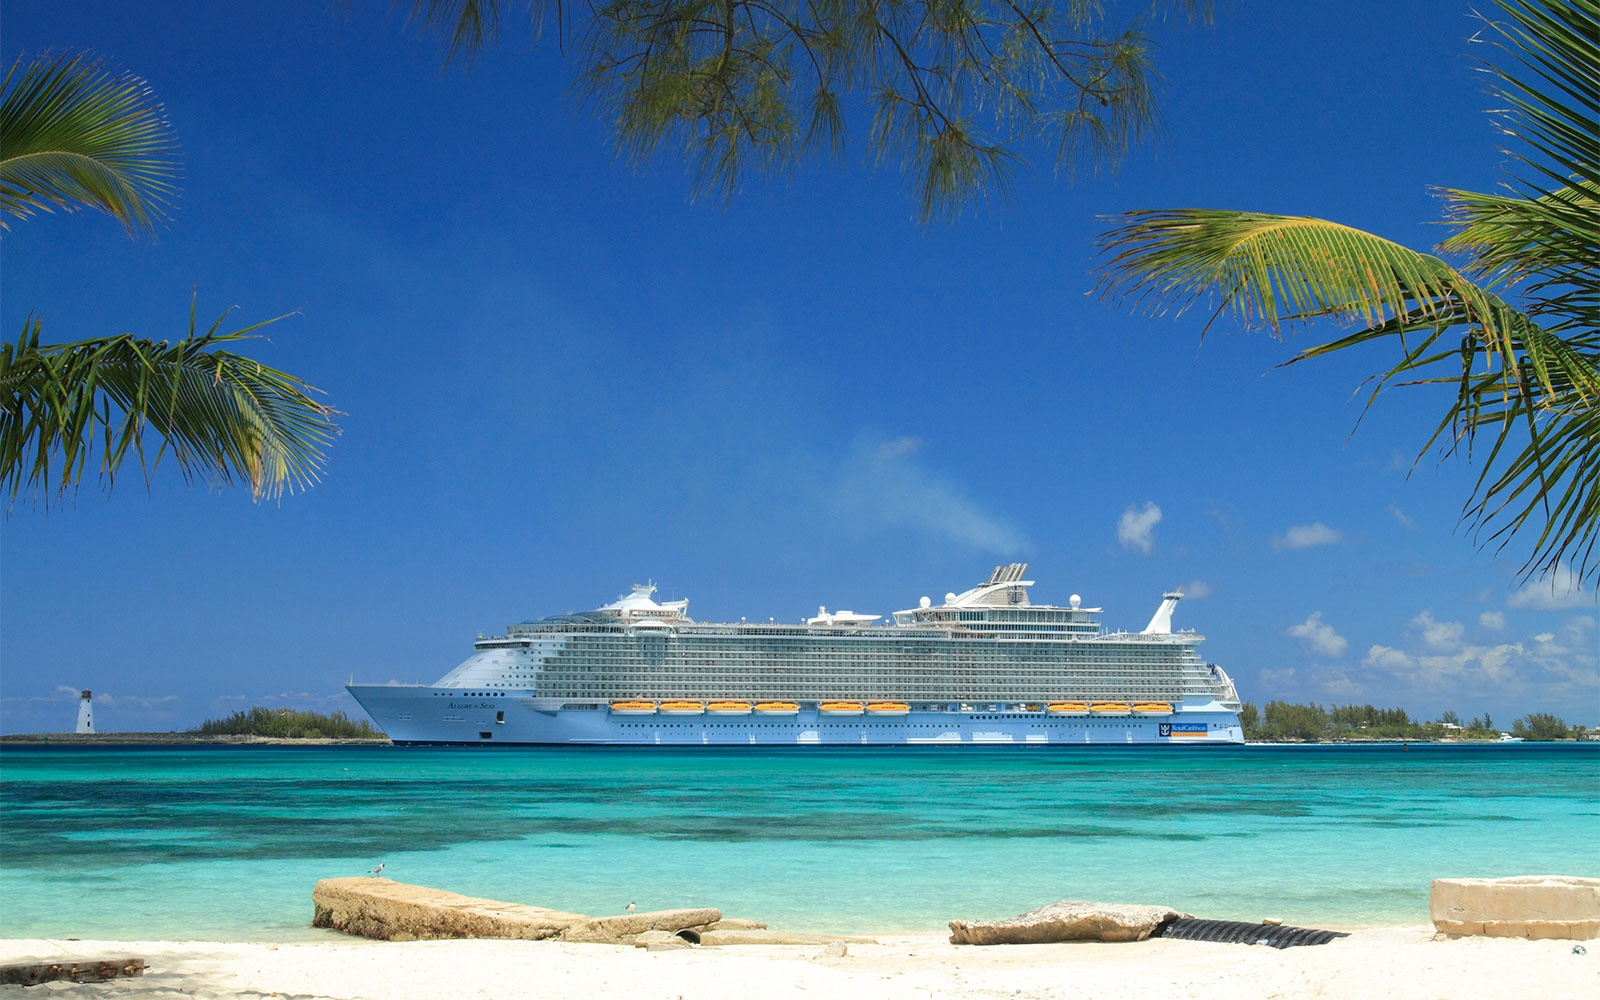 No. 9 Large-Ship Ocean Cruise Line: Royal Caribbean International